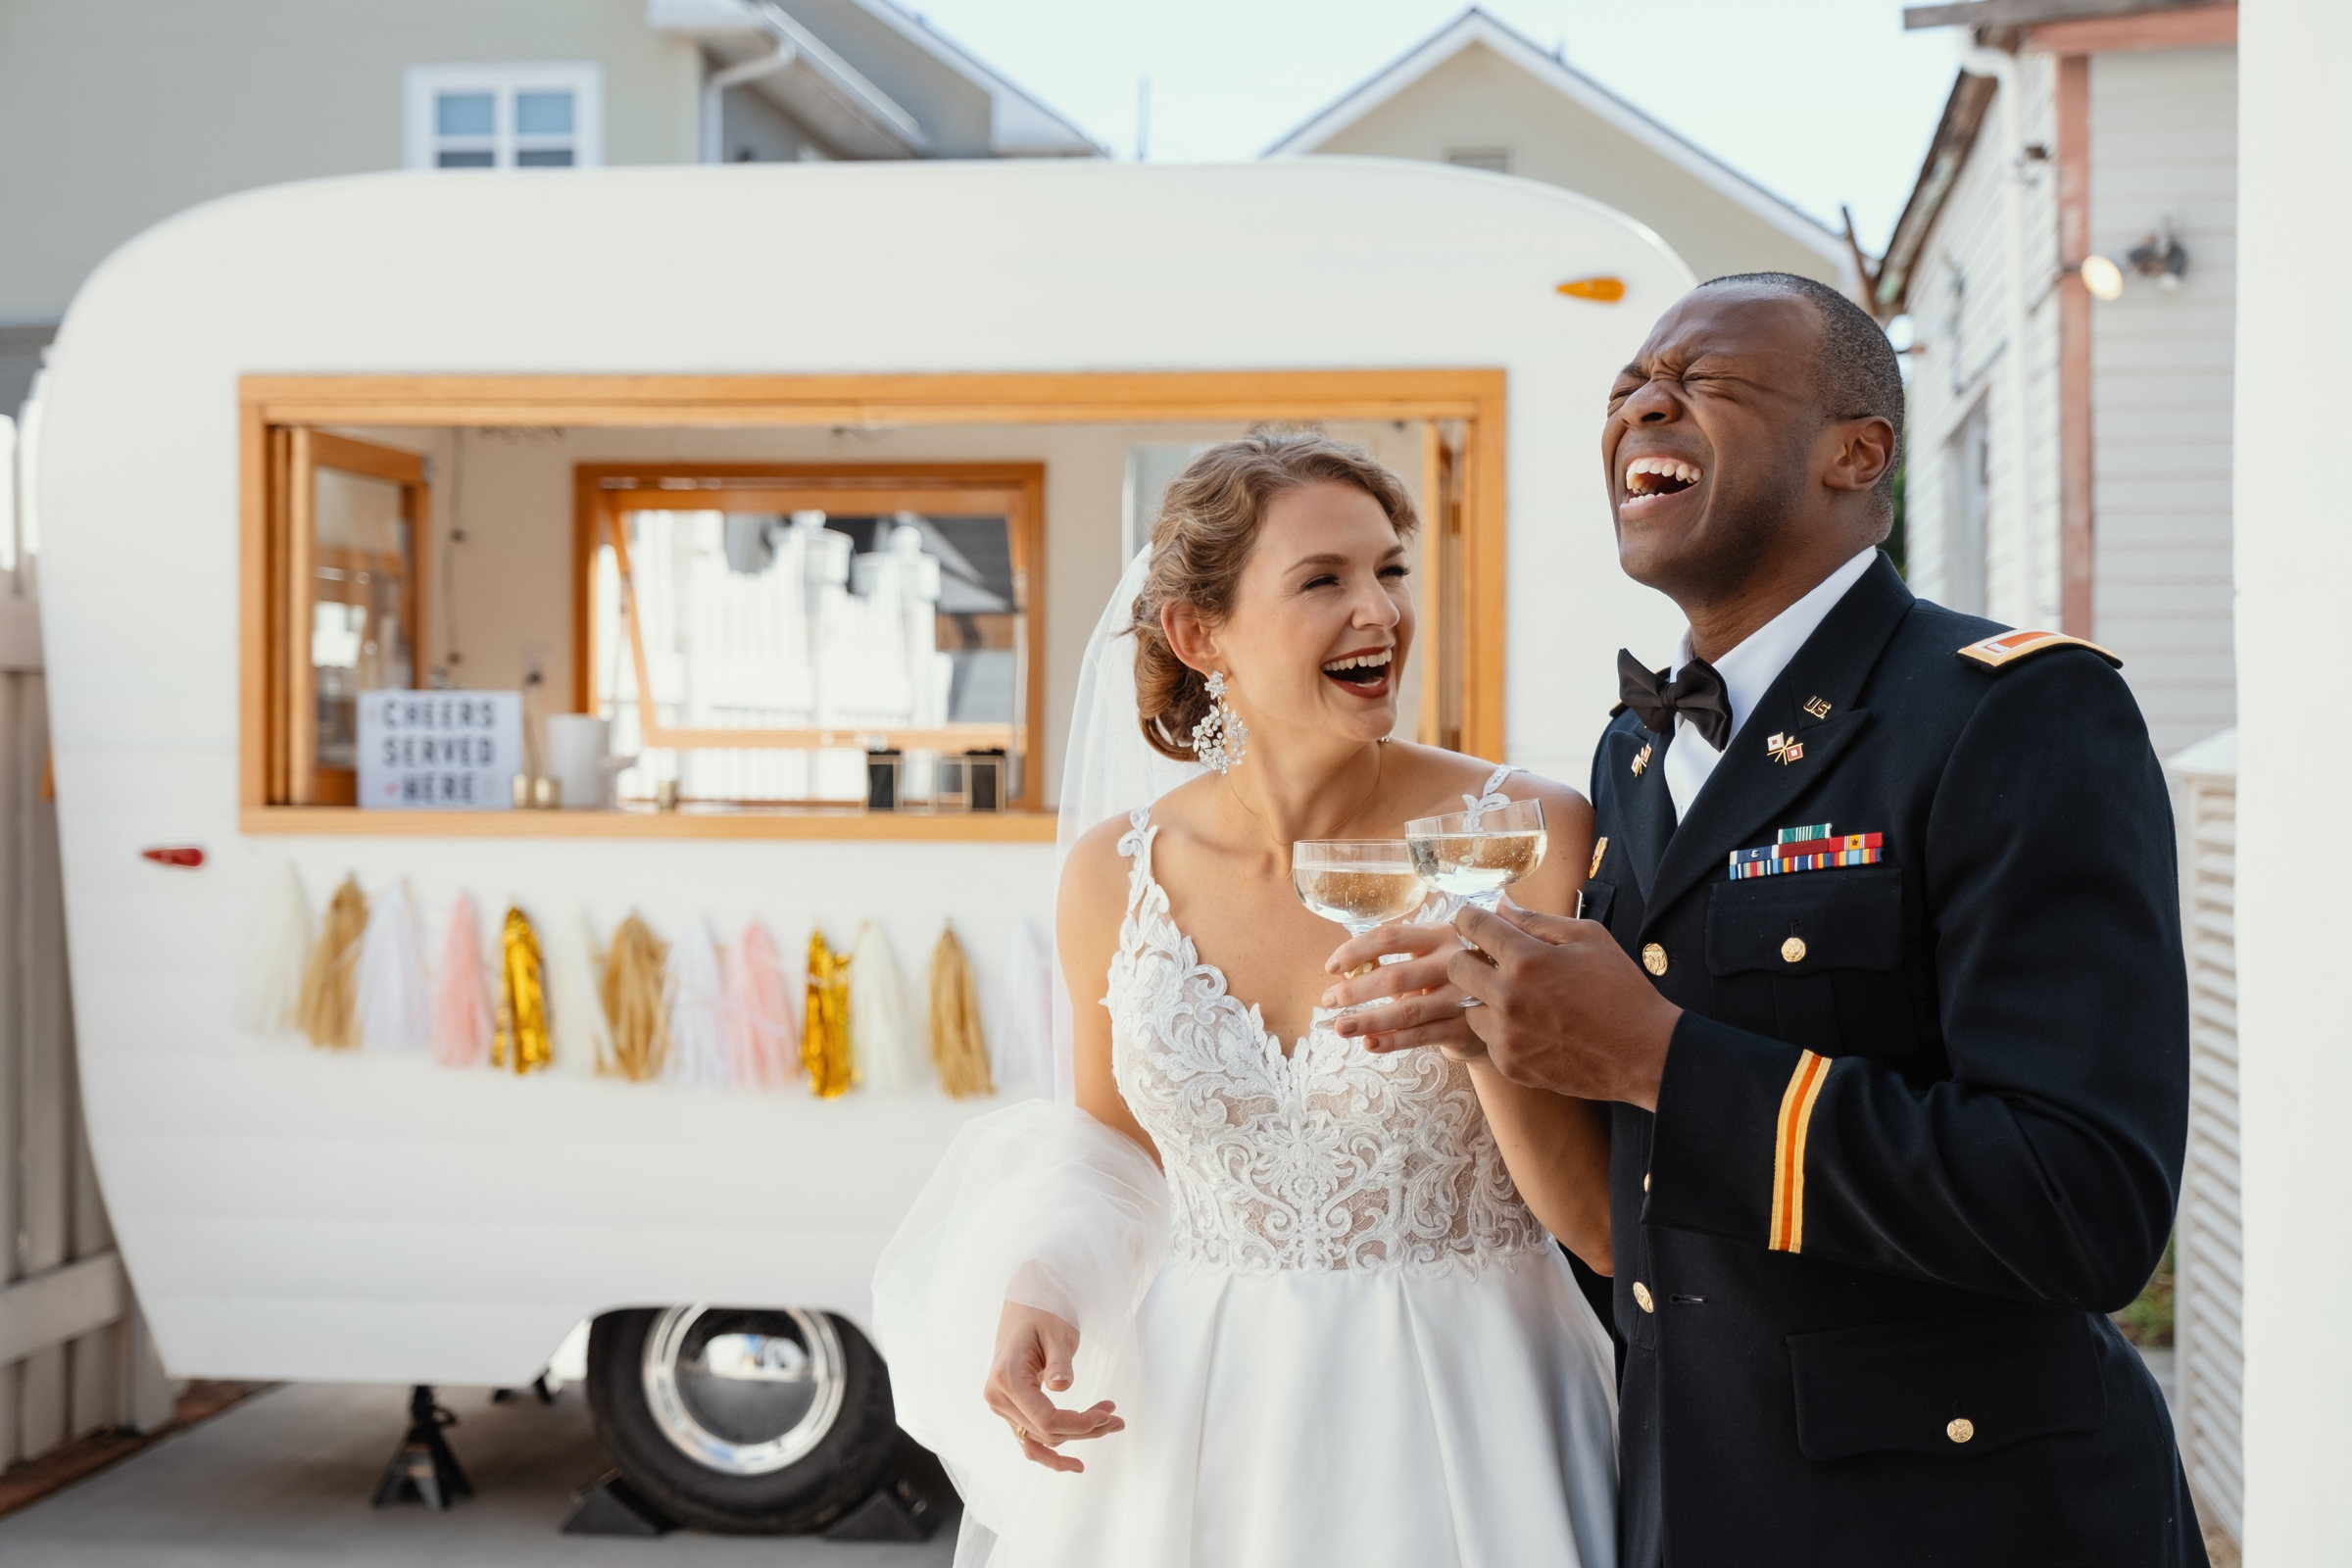 bride-and-groom-toast-by-the-food-truck-new-orleans-austin-houston-wedding-photo-by-dark-roux